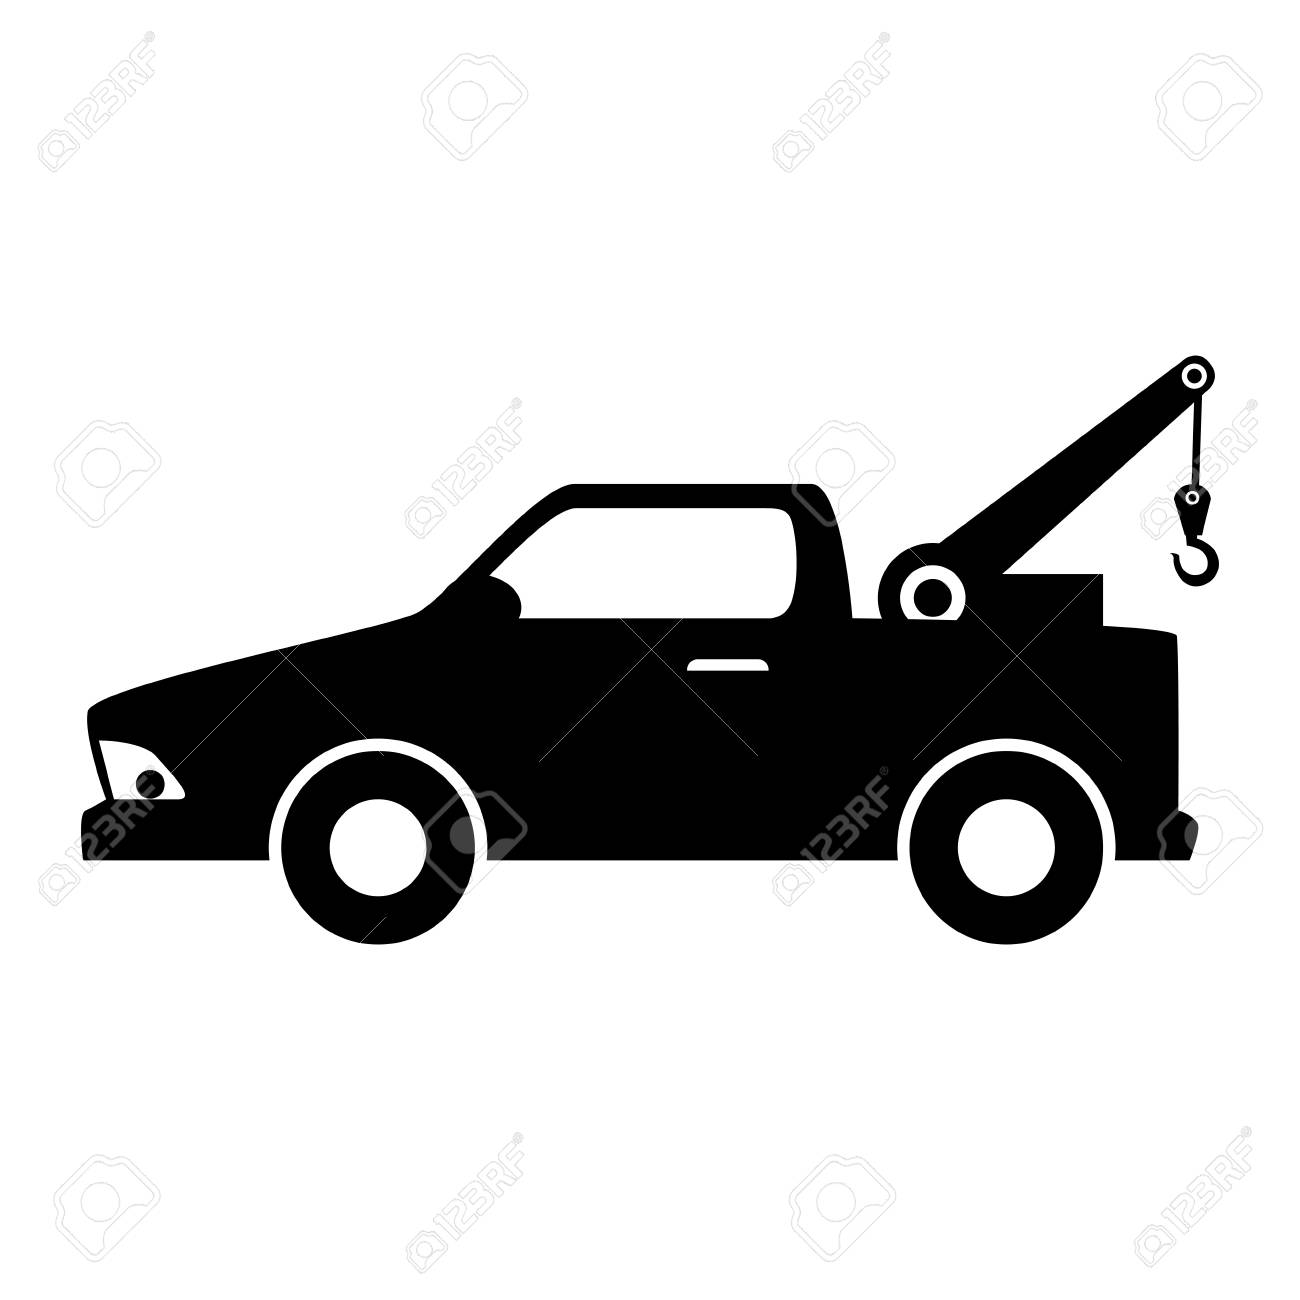 car towing truck tow service vehicle silhouette vector illustration rh 123rf com tow truck logo vector tow truck vector art